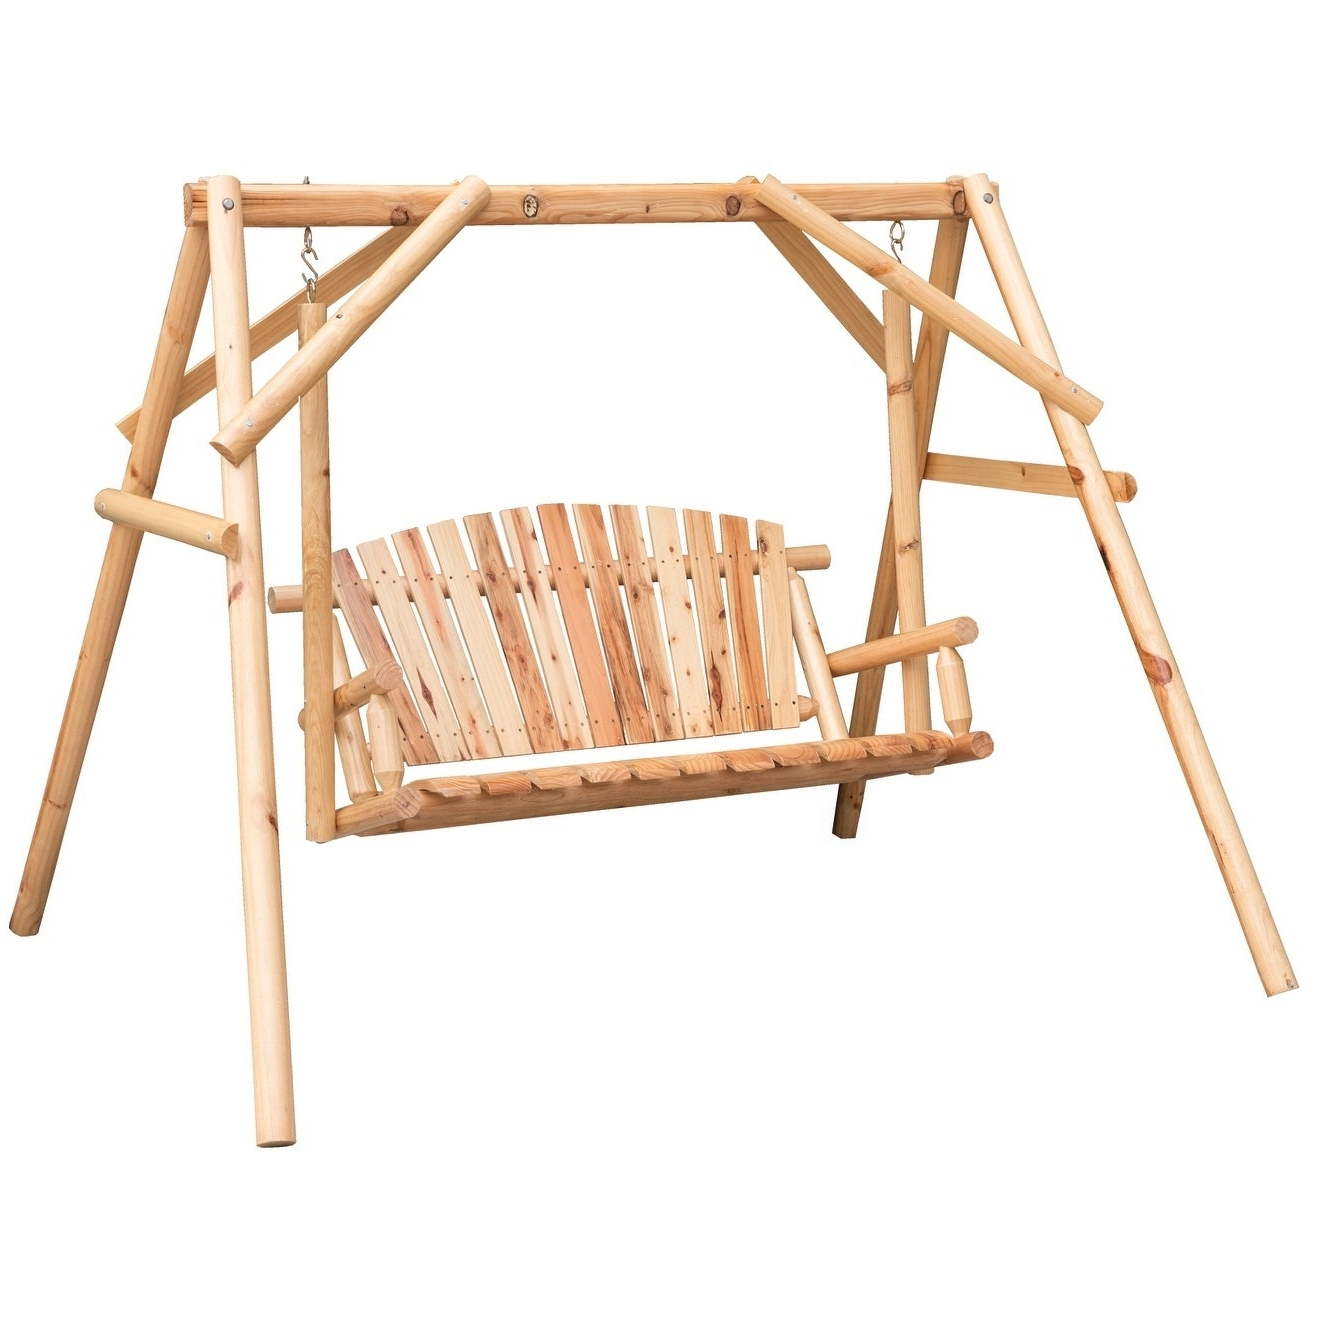 3 Person Light Teak Oil Wood Outdoor Swings With Well Known Wooden A Frame 2 Person Outdoor Porch Patio Swing Log Wood Chair Bench (Gallery 15 of 25)